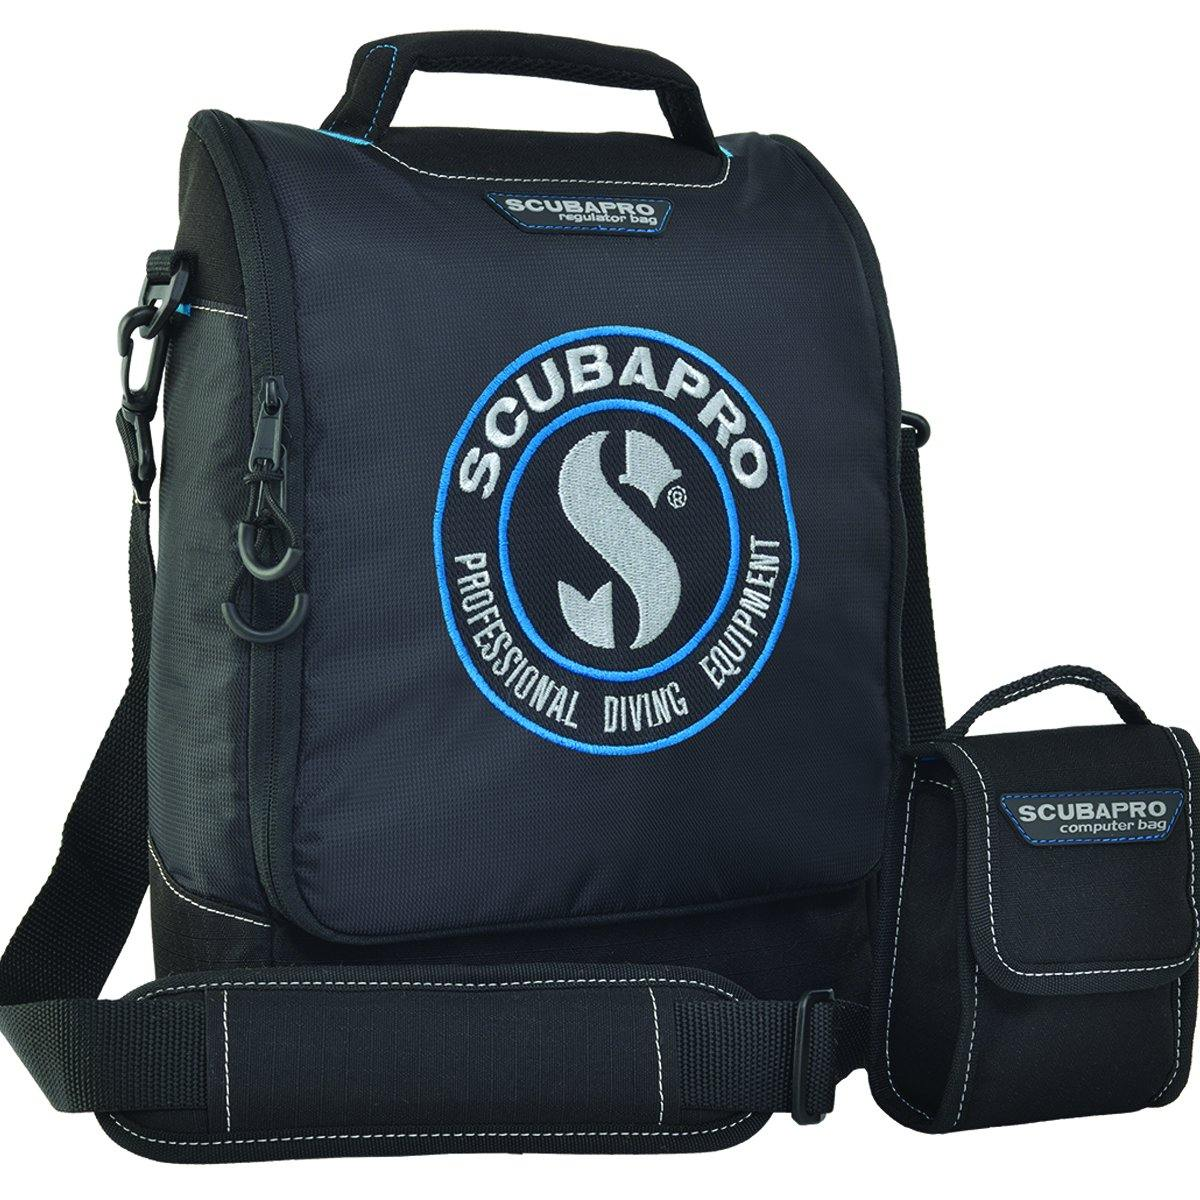 Scubapro Regulatorbag und Instrumententasche